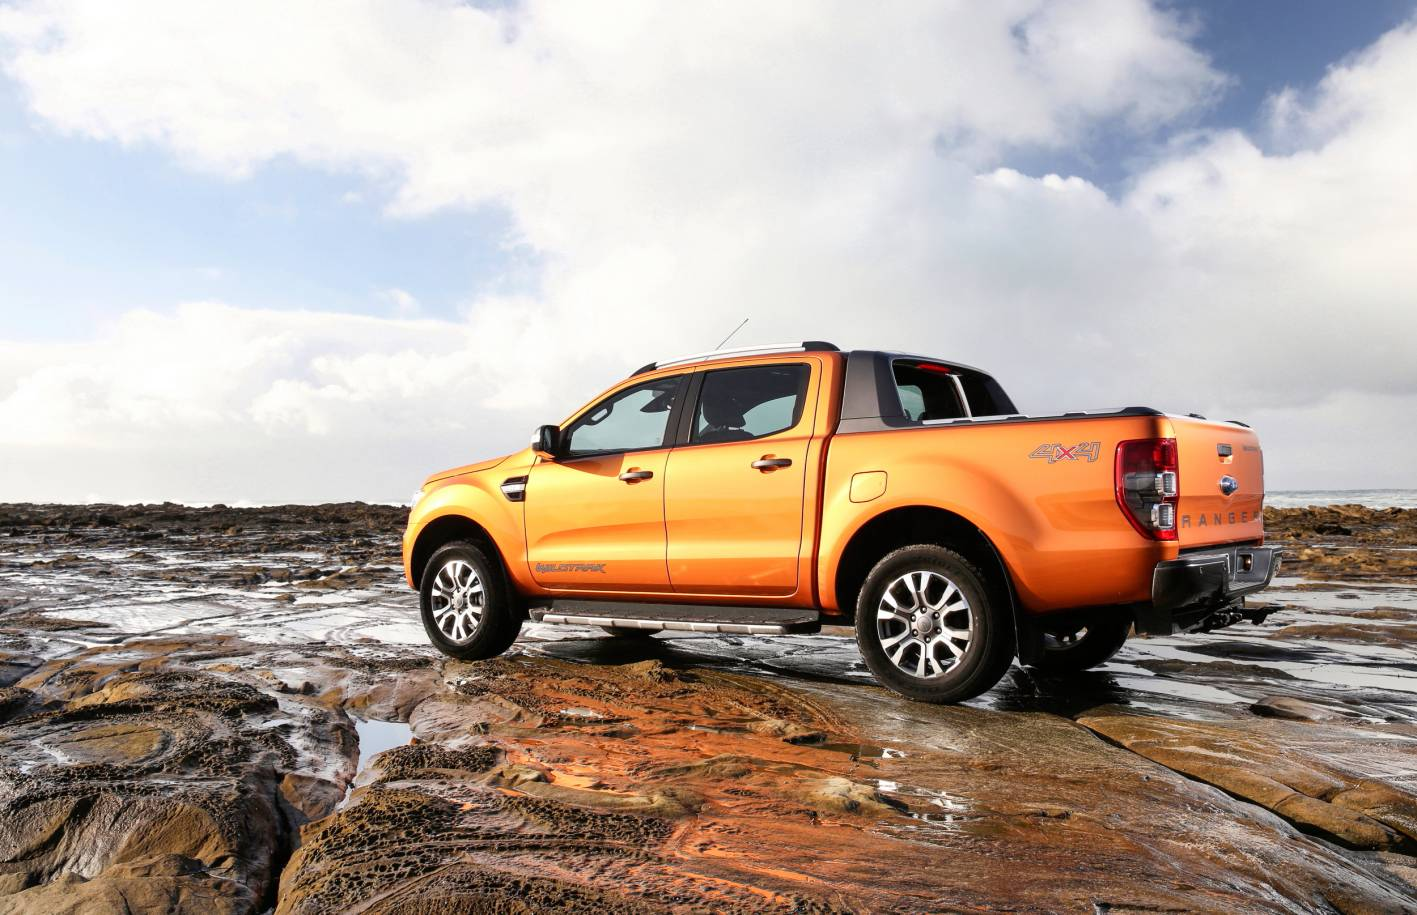 Is the Ford Ranger Gearbox Made in China? — Auto Expert by John